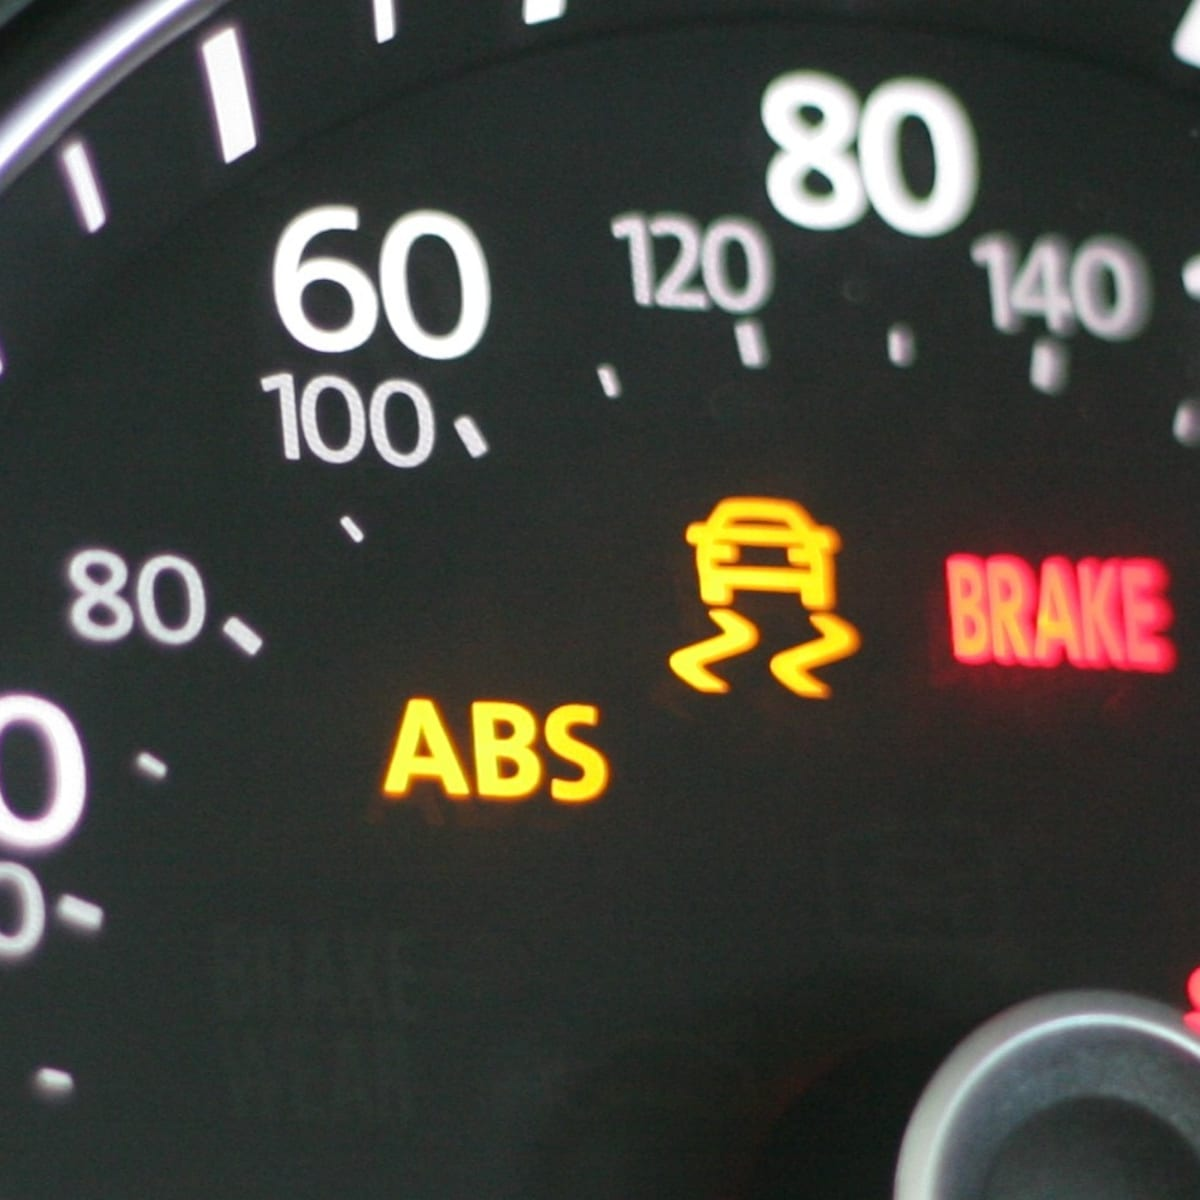 Braking assistance technology explained: ABS, EBD, BA and